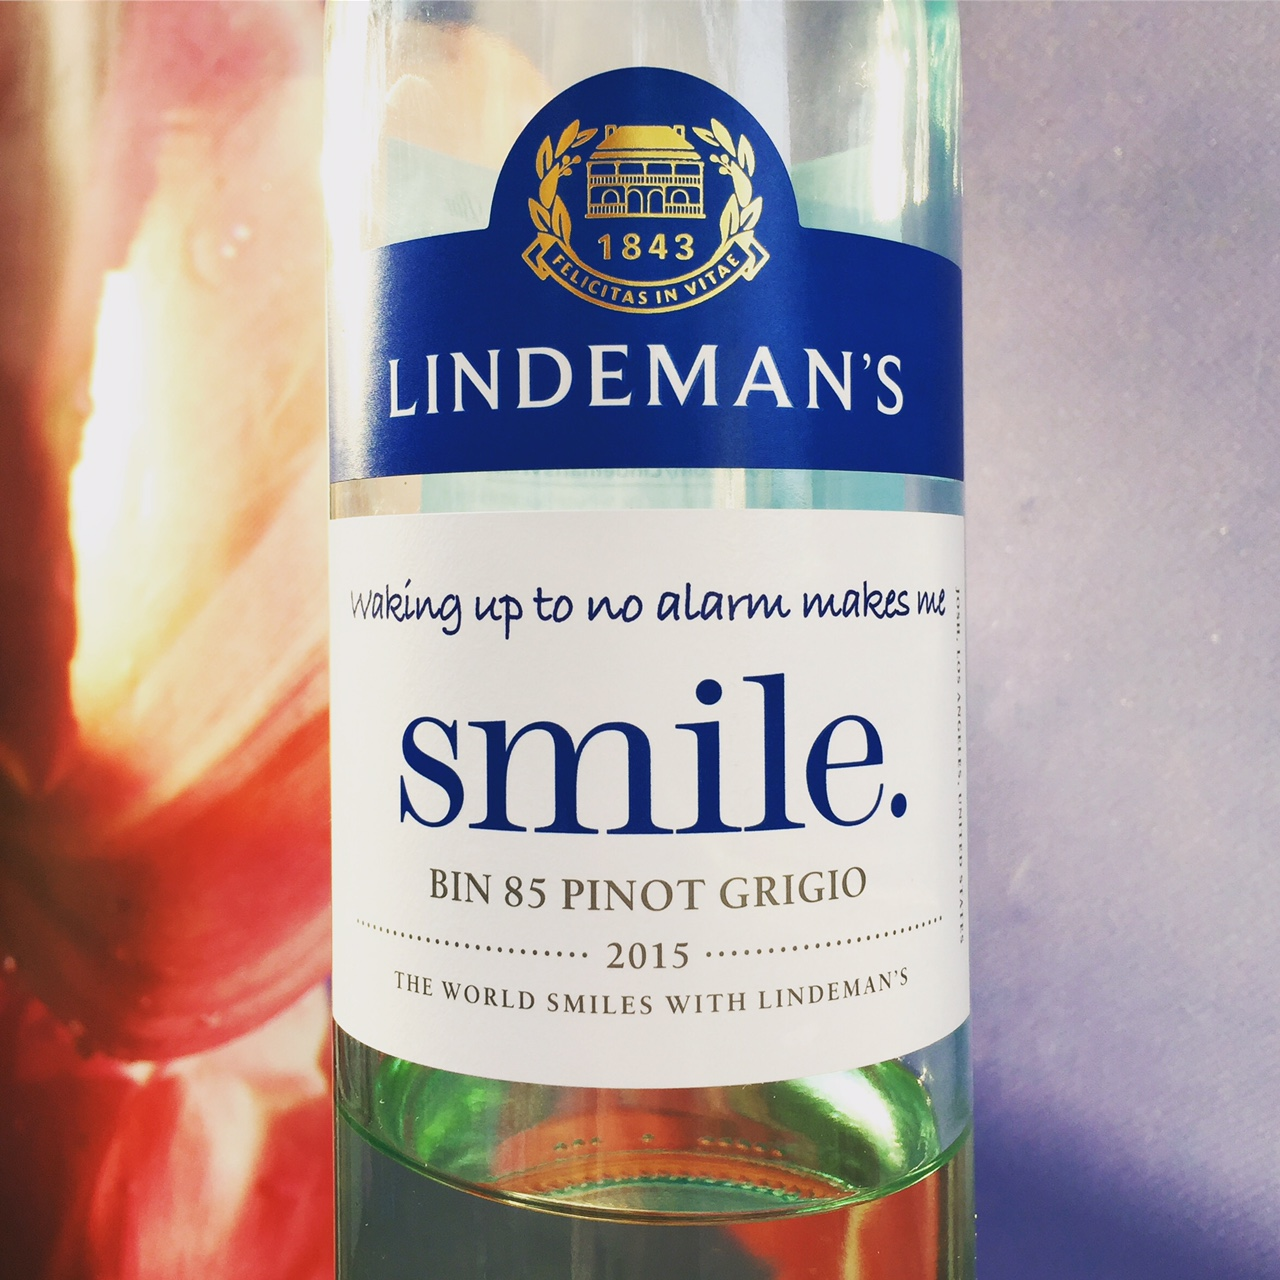 Smile Pinot Grigio, Lindeman's Review